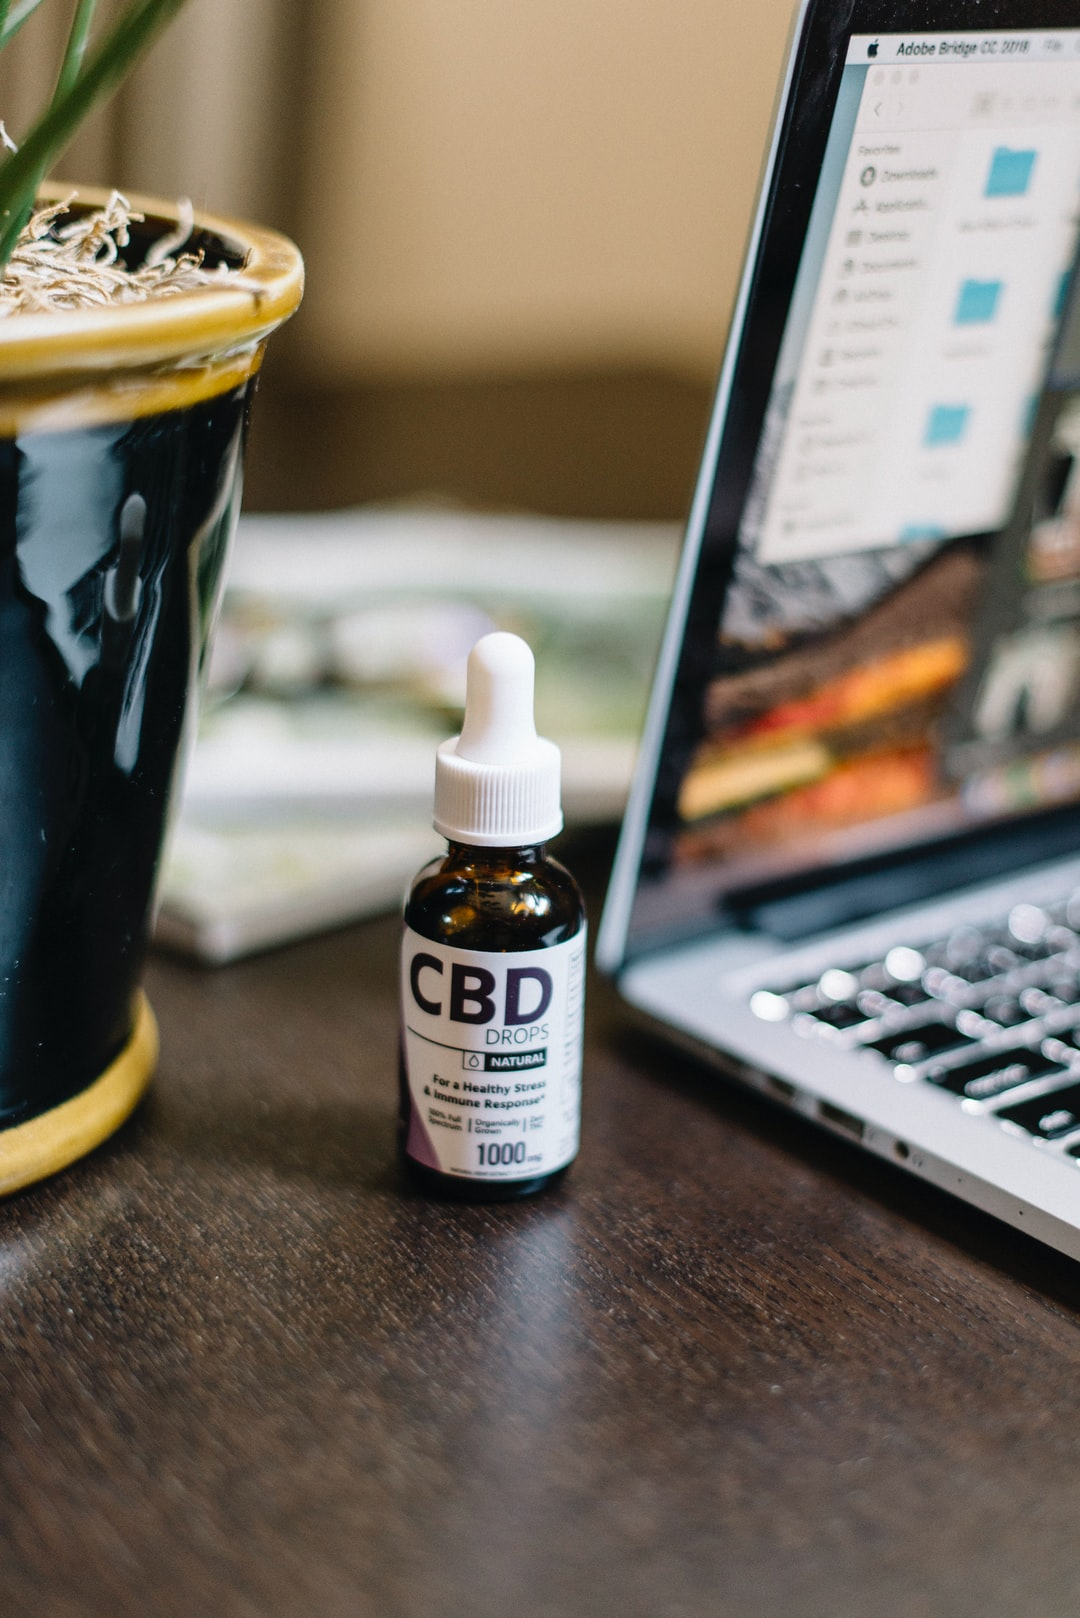 Hemp Oil vs CBD Oil for Anxiety: What You Should Know